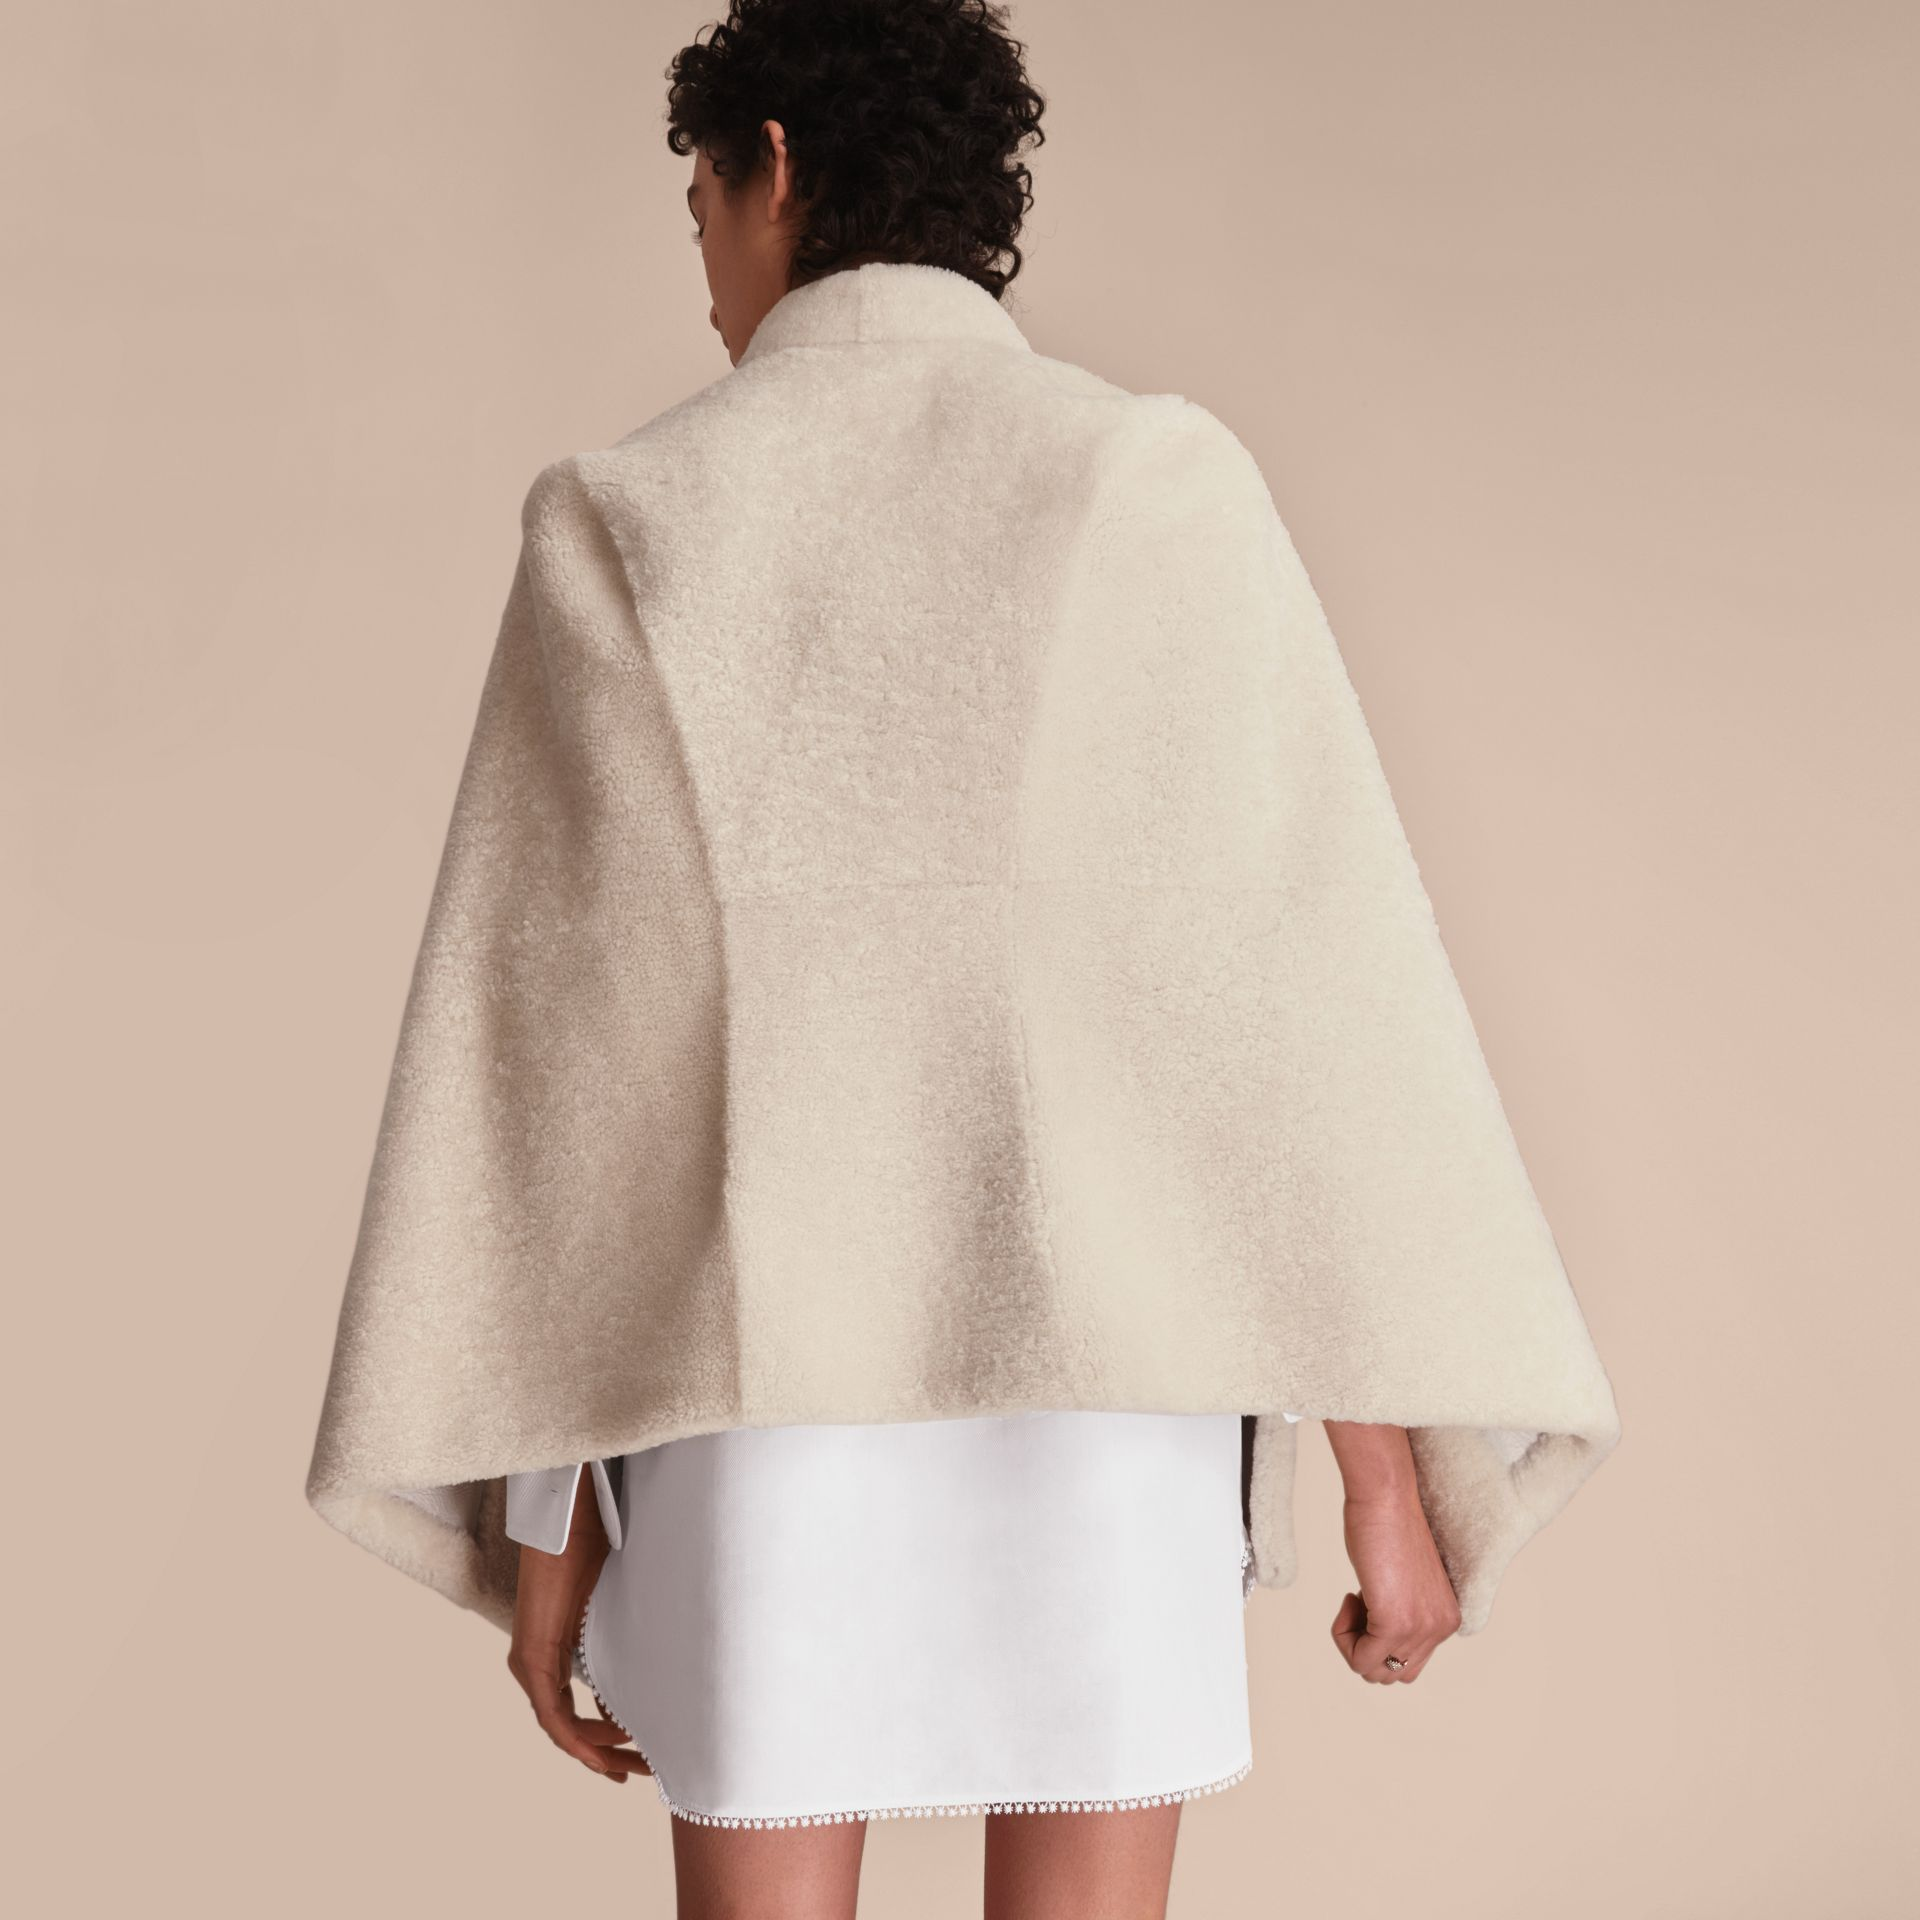 Sculptural Shearling Cape in White - Women | Burberry Canada - gallery image 3